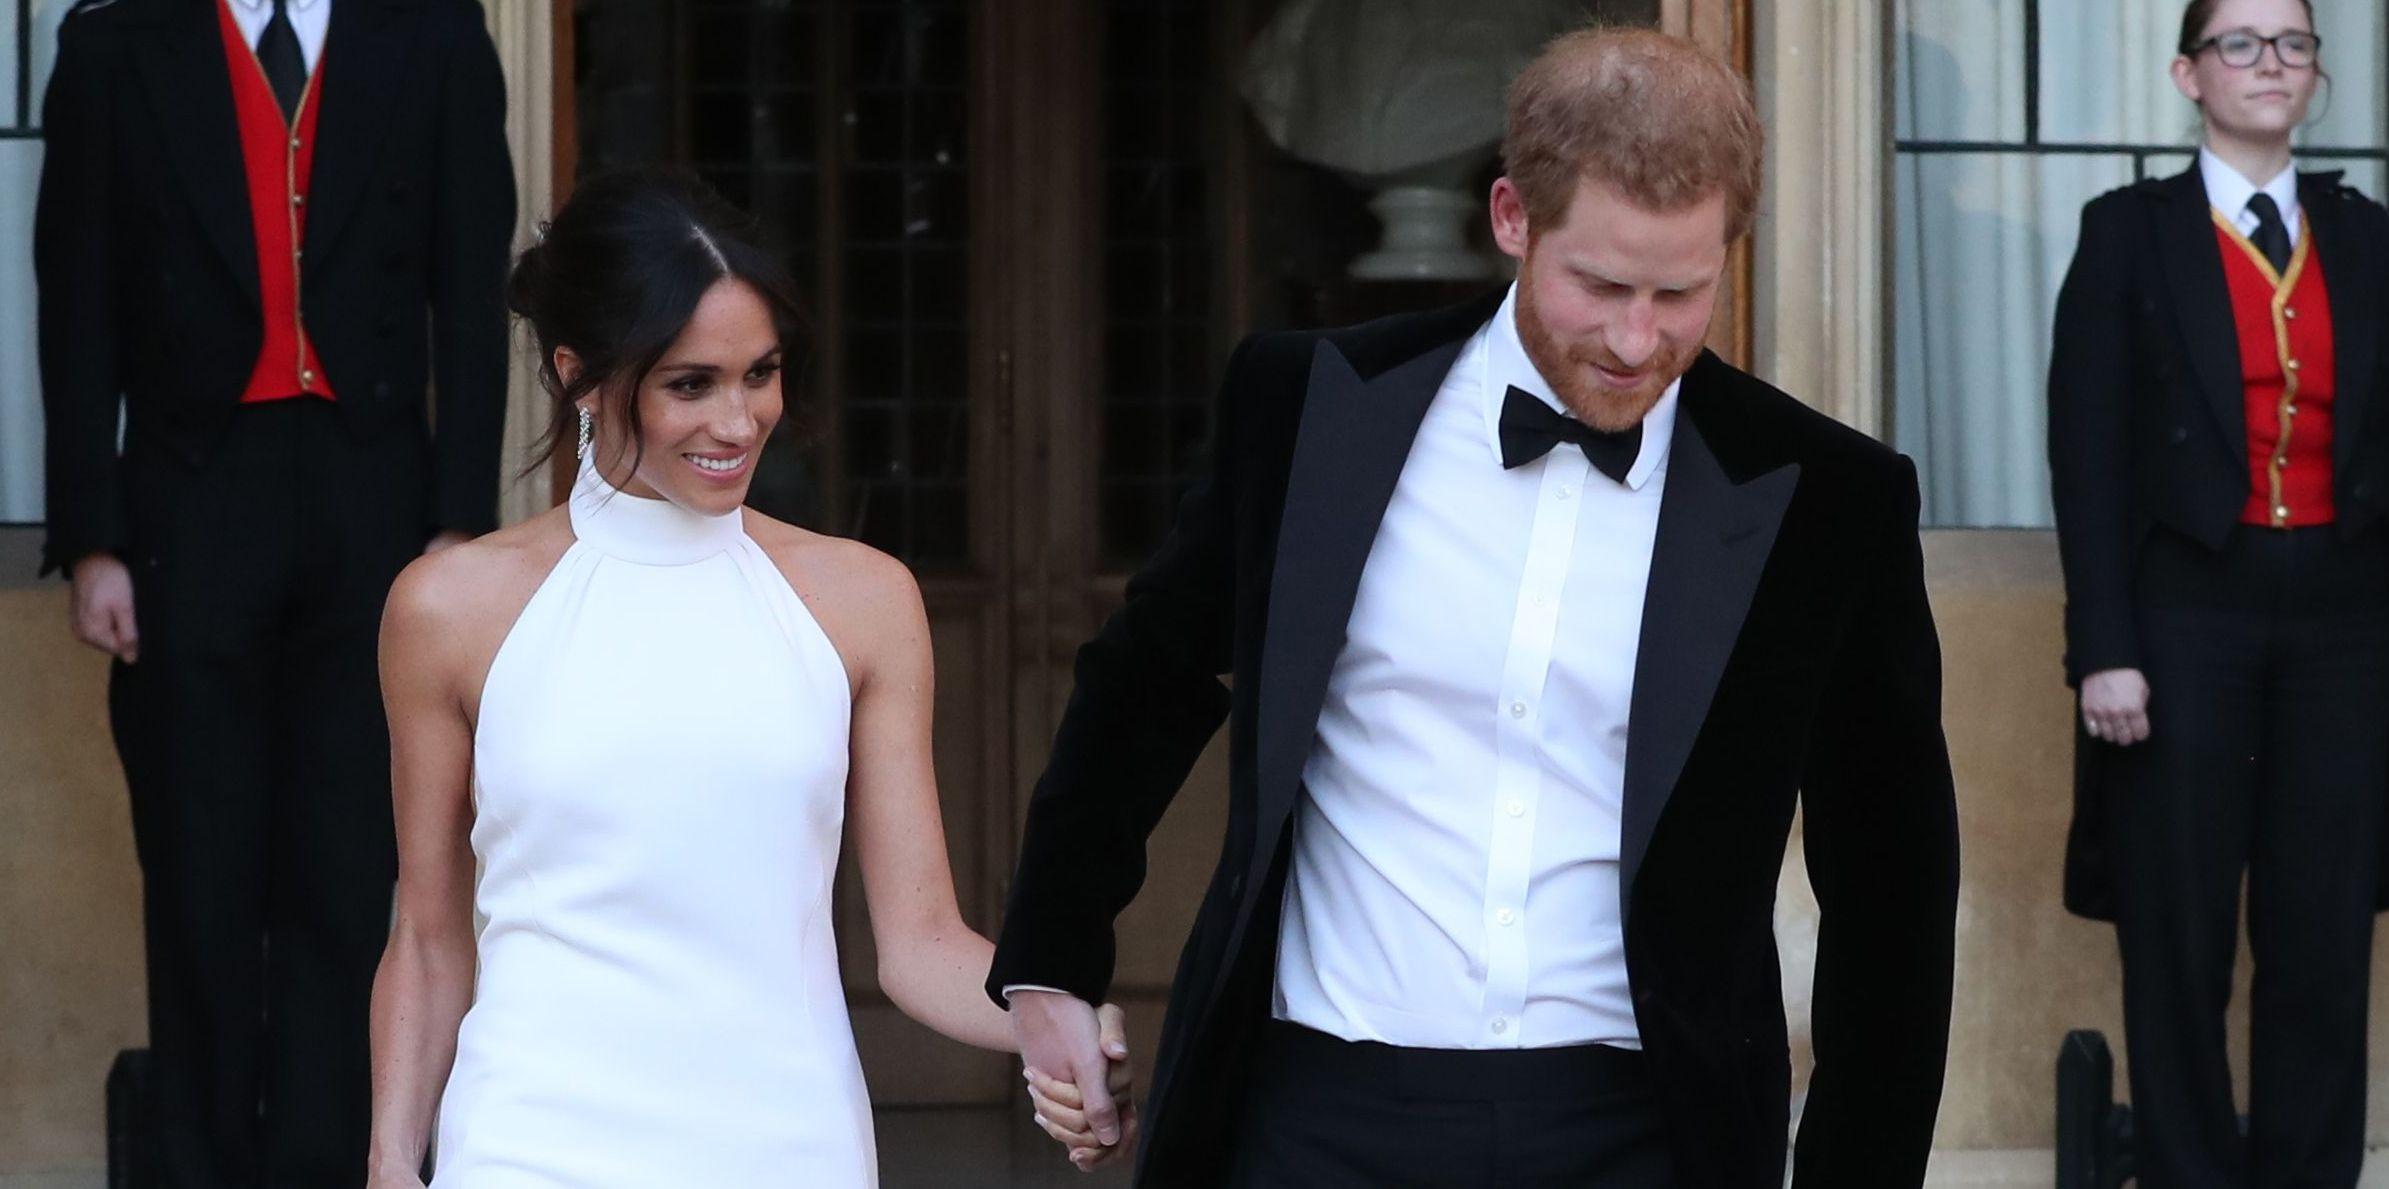 Meghan Markle's second wedding dress